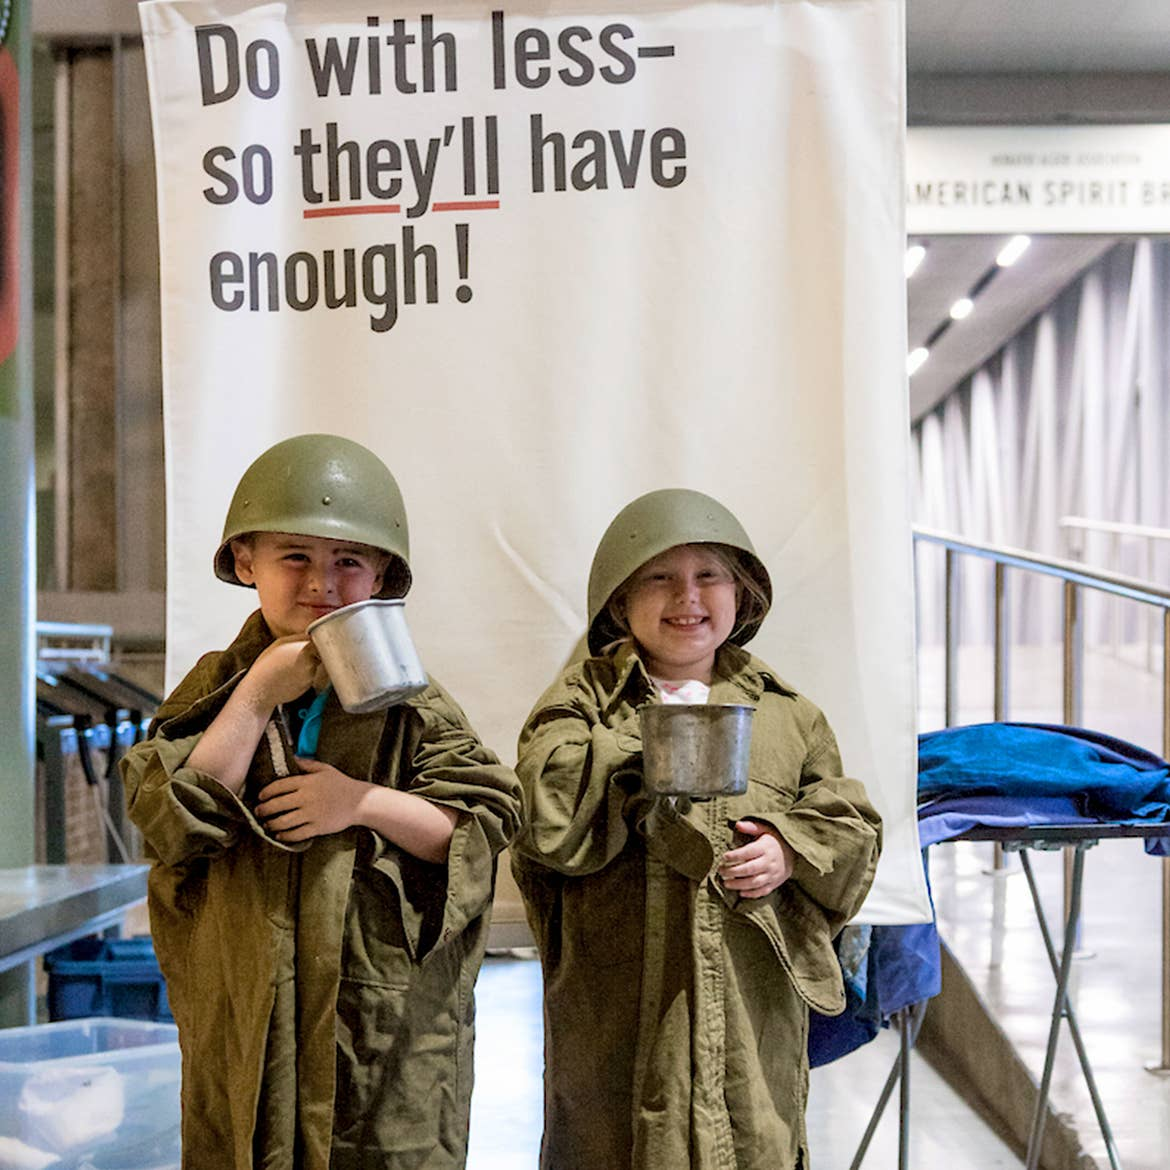 Two children recreate WWII propaganda dressed in 'Army Greens' and a helmet while holding silver mugs in front of a sign that reads, 'Do with less- So they have enough!'